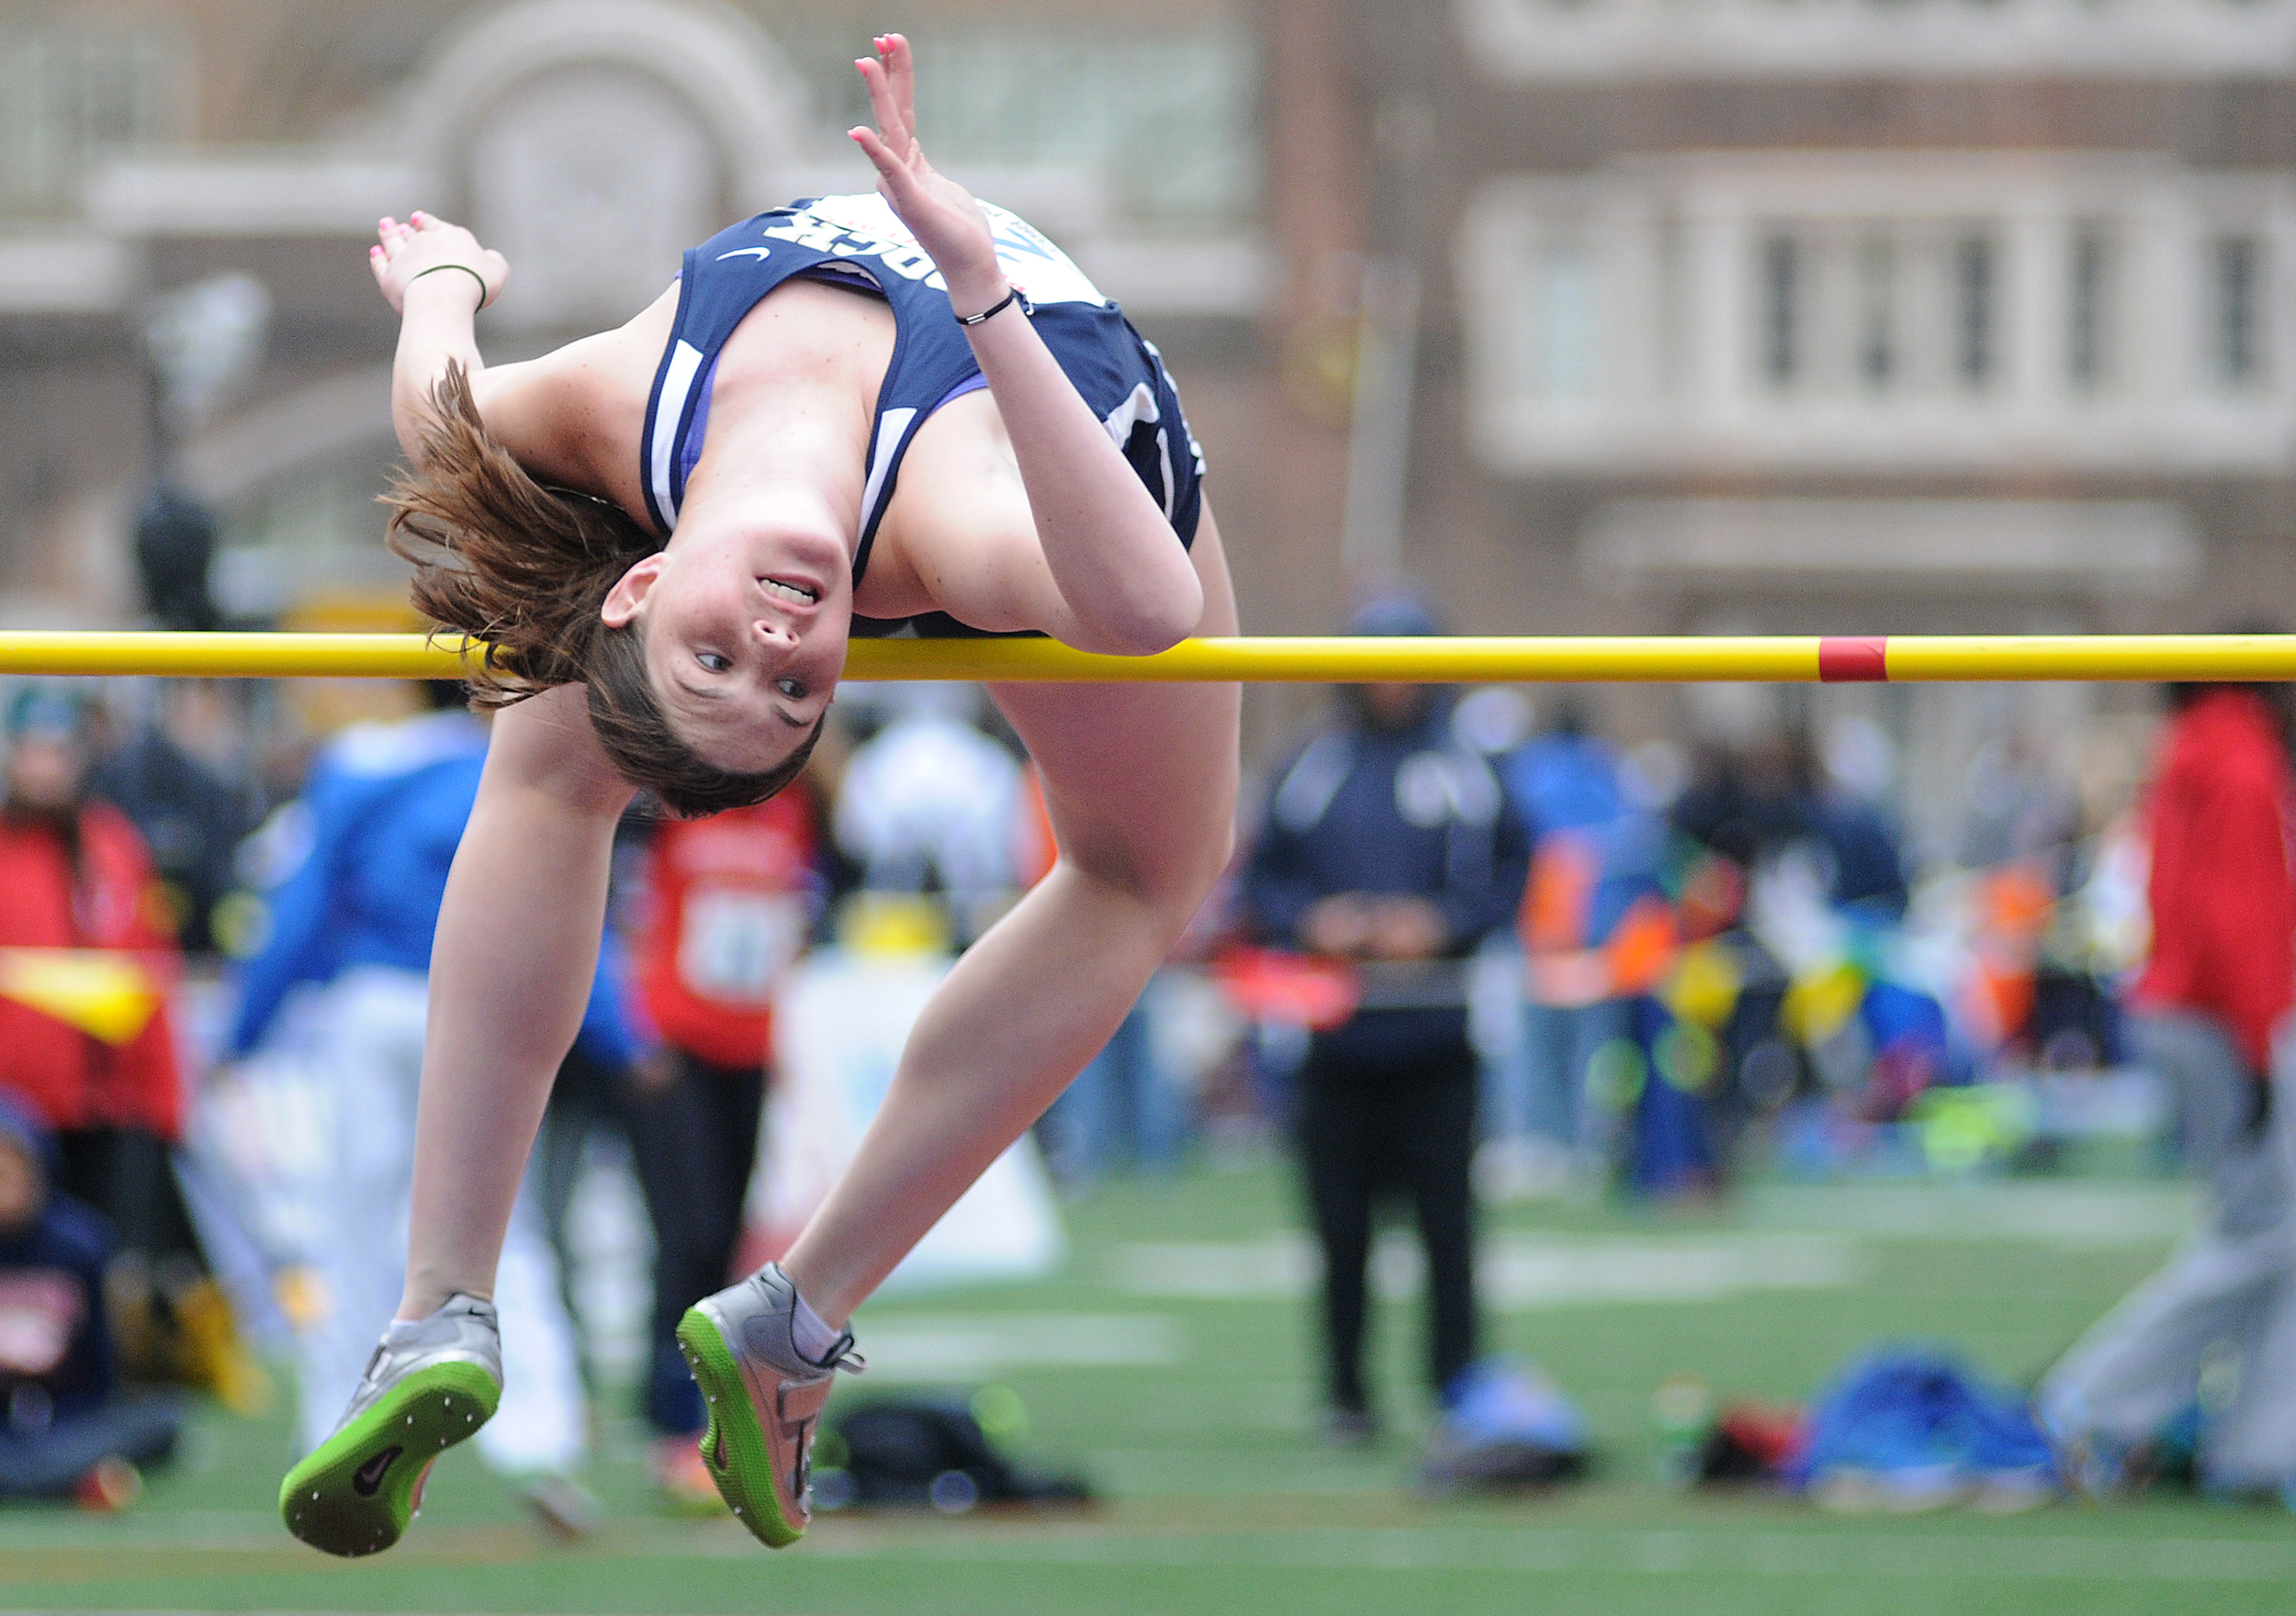 Council Rock South's Shannon Taub participates in the high jump championship during the opening day of the Penn Relays on Thursday, April 23, 2015 at the University of Pennsylvania's Franklin Field in Philadelphia.